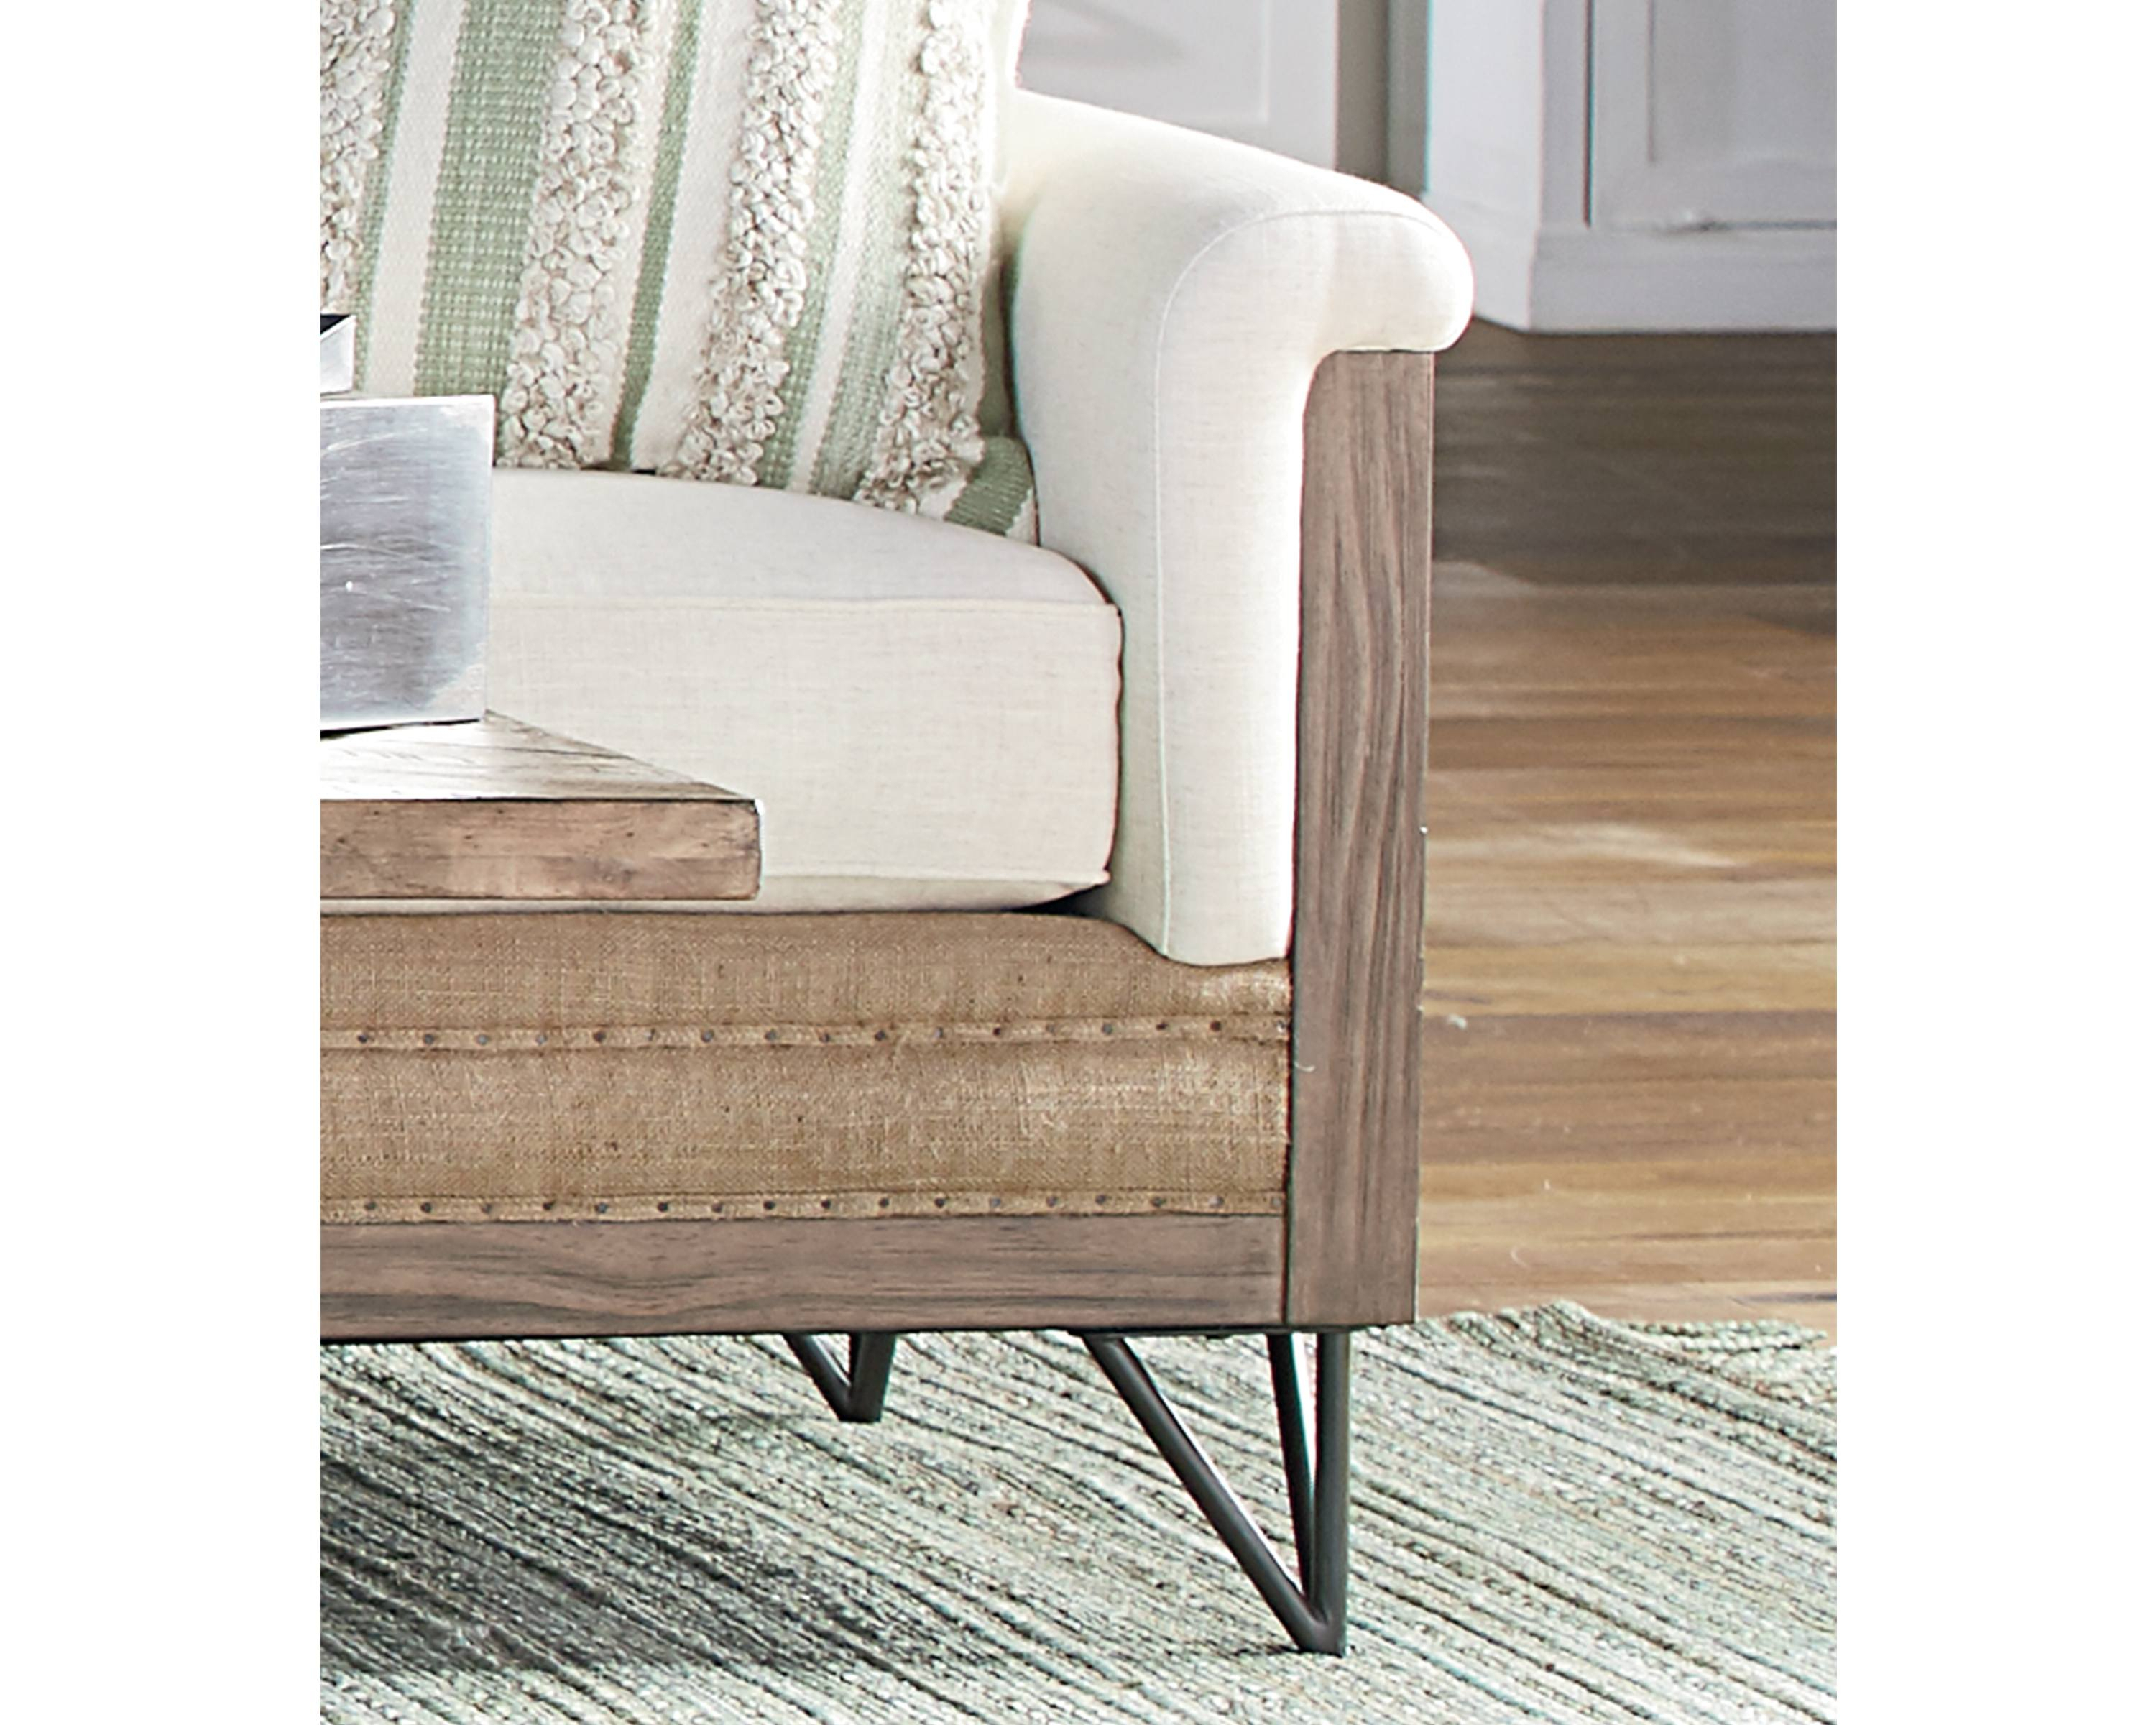 Paradigm Sofa – Magnolia Home Regarding Magnolia Home Paradigm Sofa Chairs By Joanna Gaines (View 5 of 20)